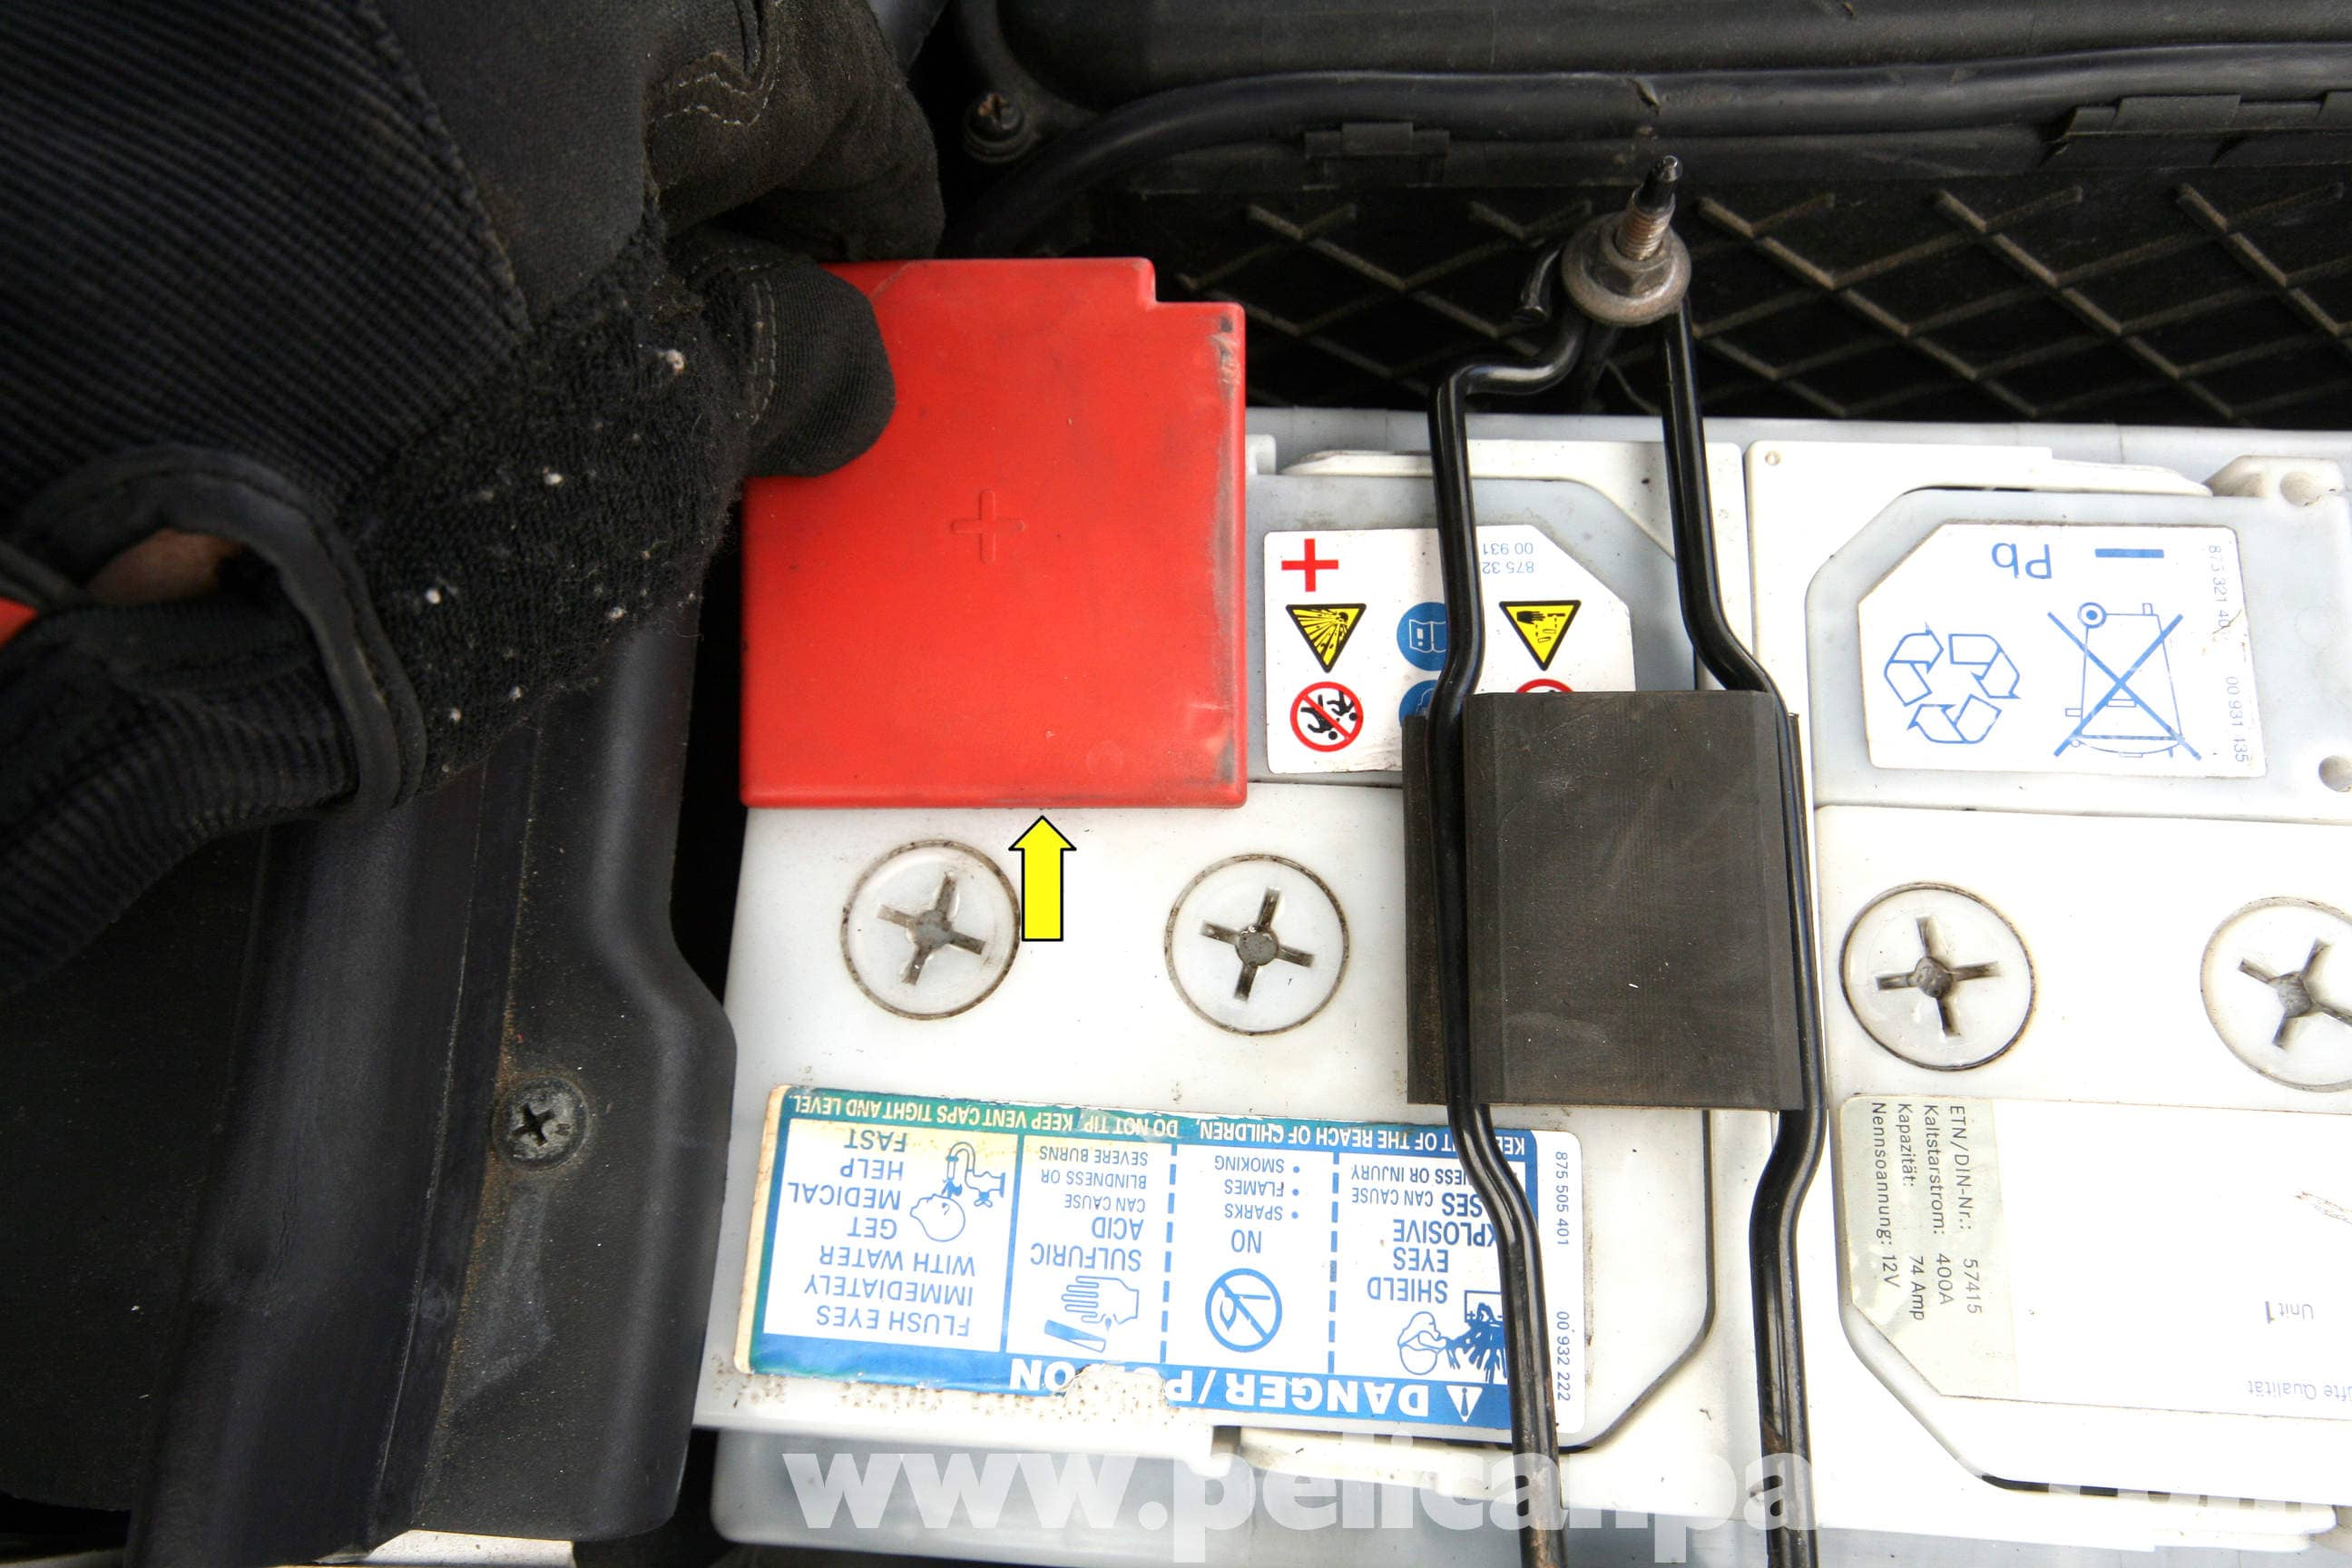 Mercedes-Benz SLK 230 Battery Replacement and Maitenance | 1998-2004